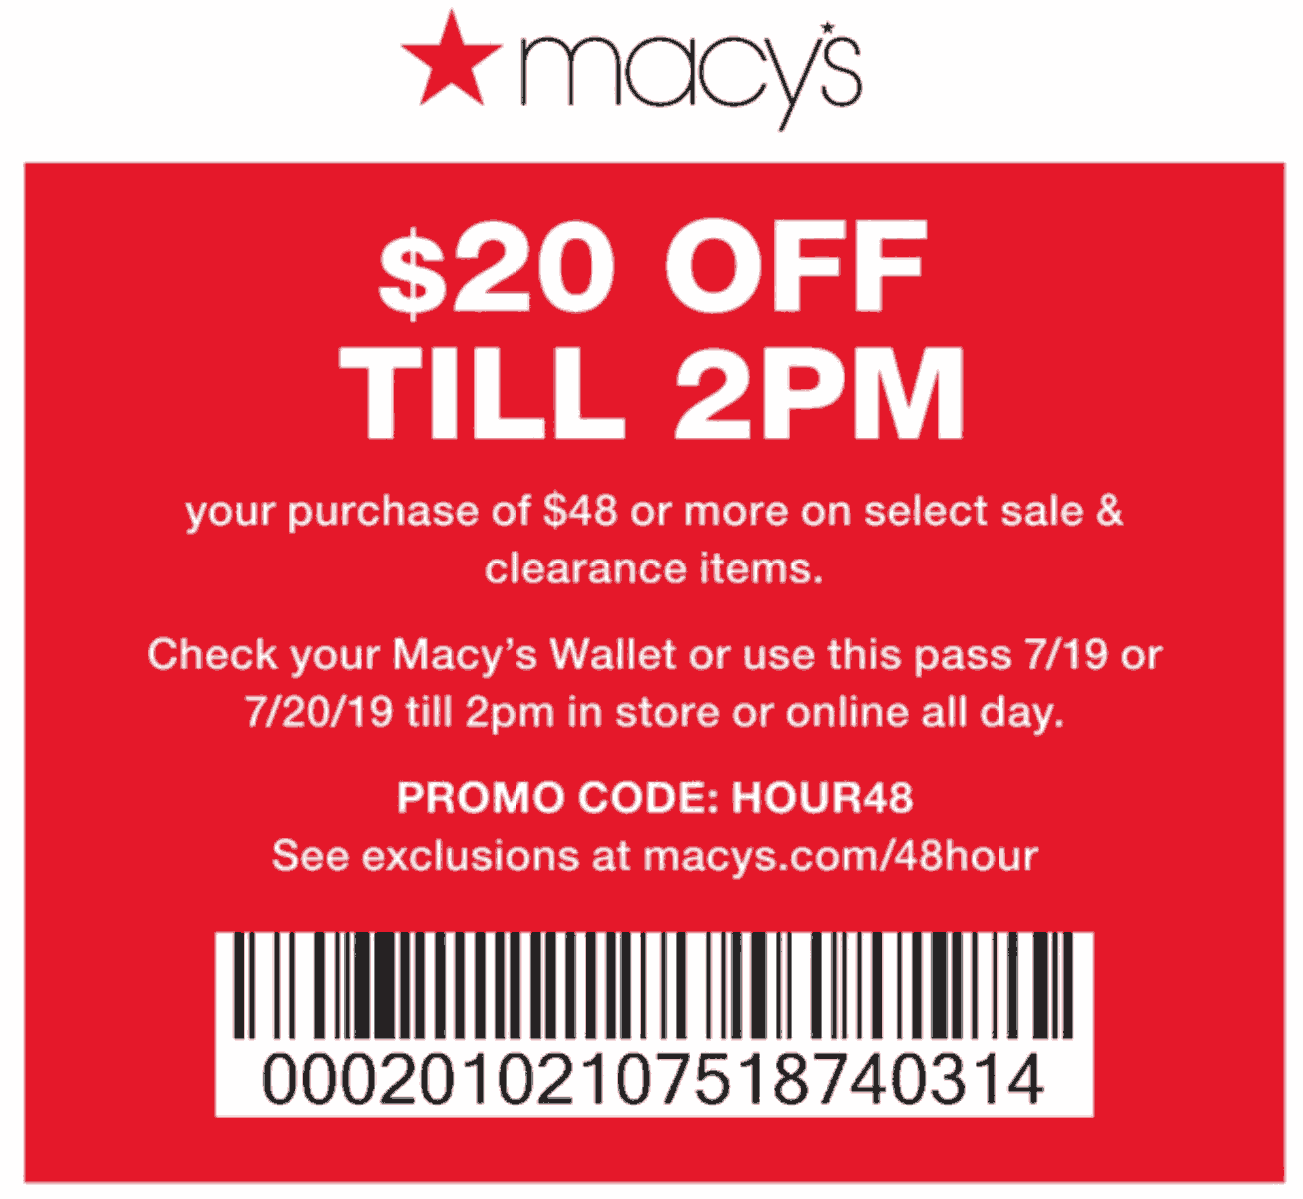 Macys.com Promo Coupon $20 off $48 til 2pm at Macys, or online via promo code HOUR48